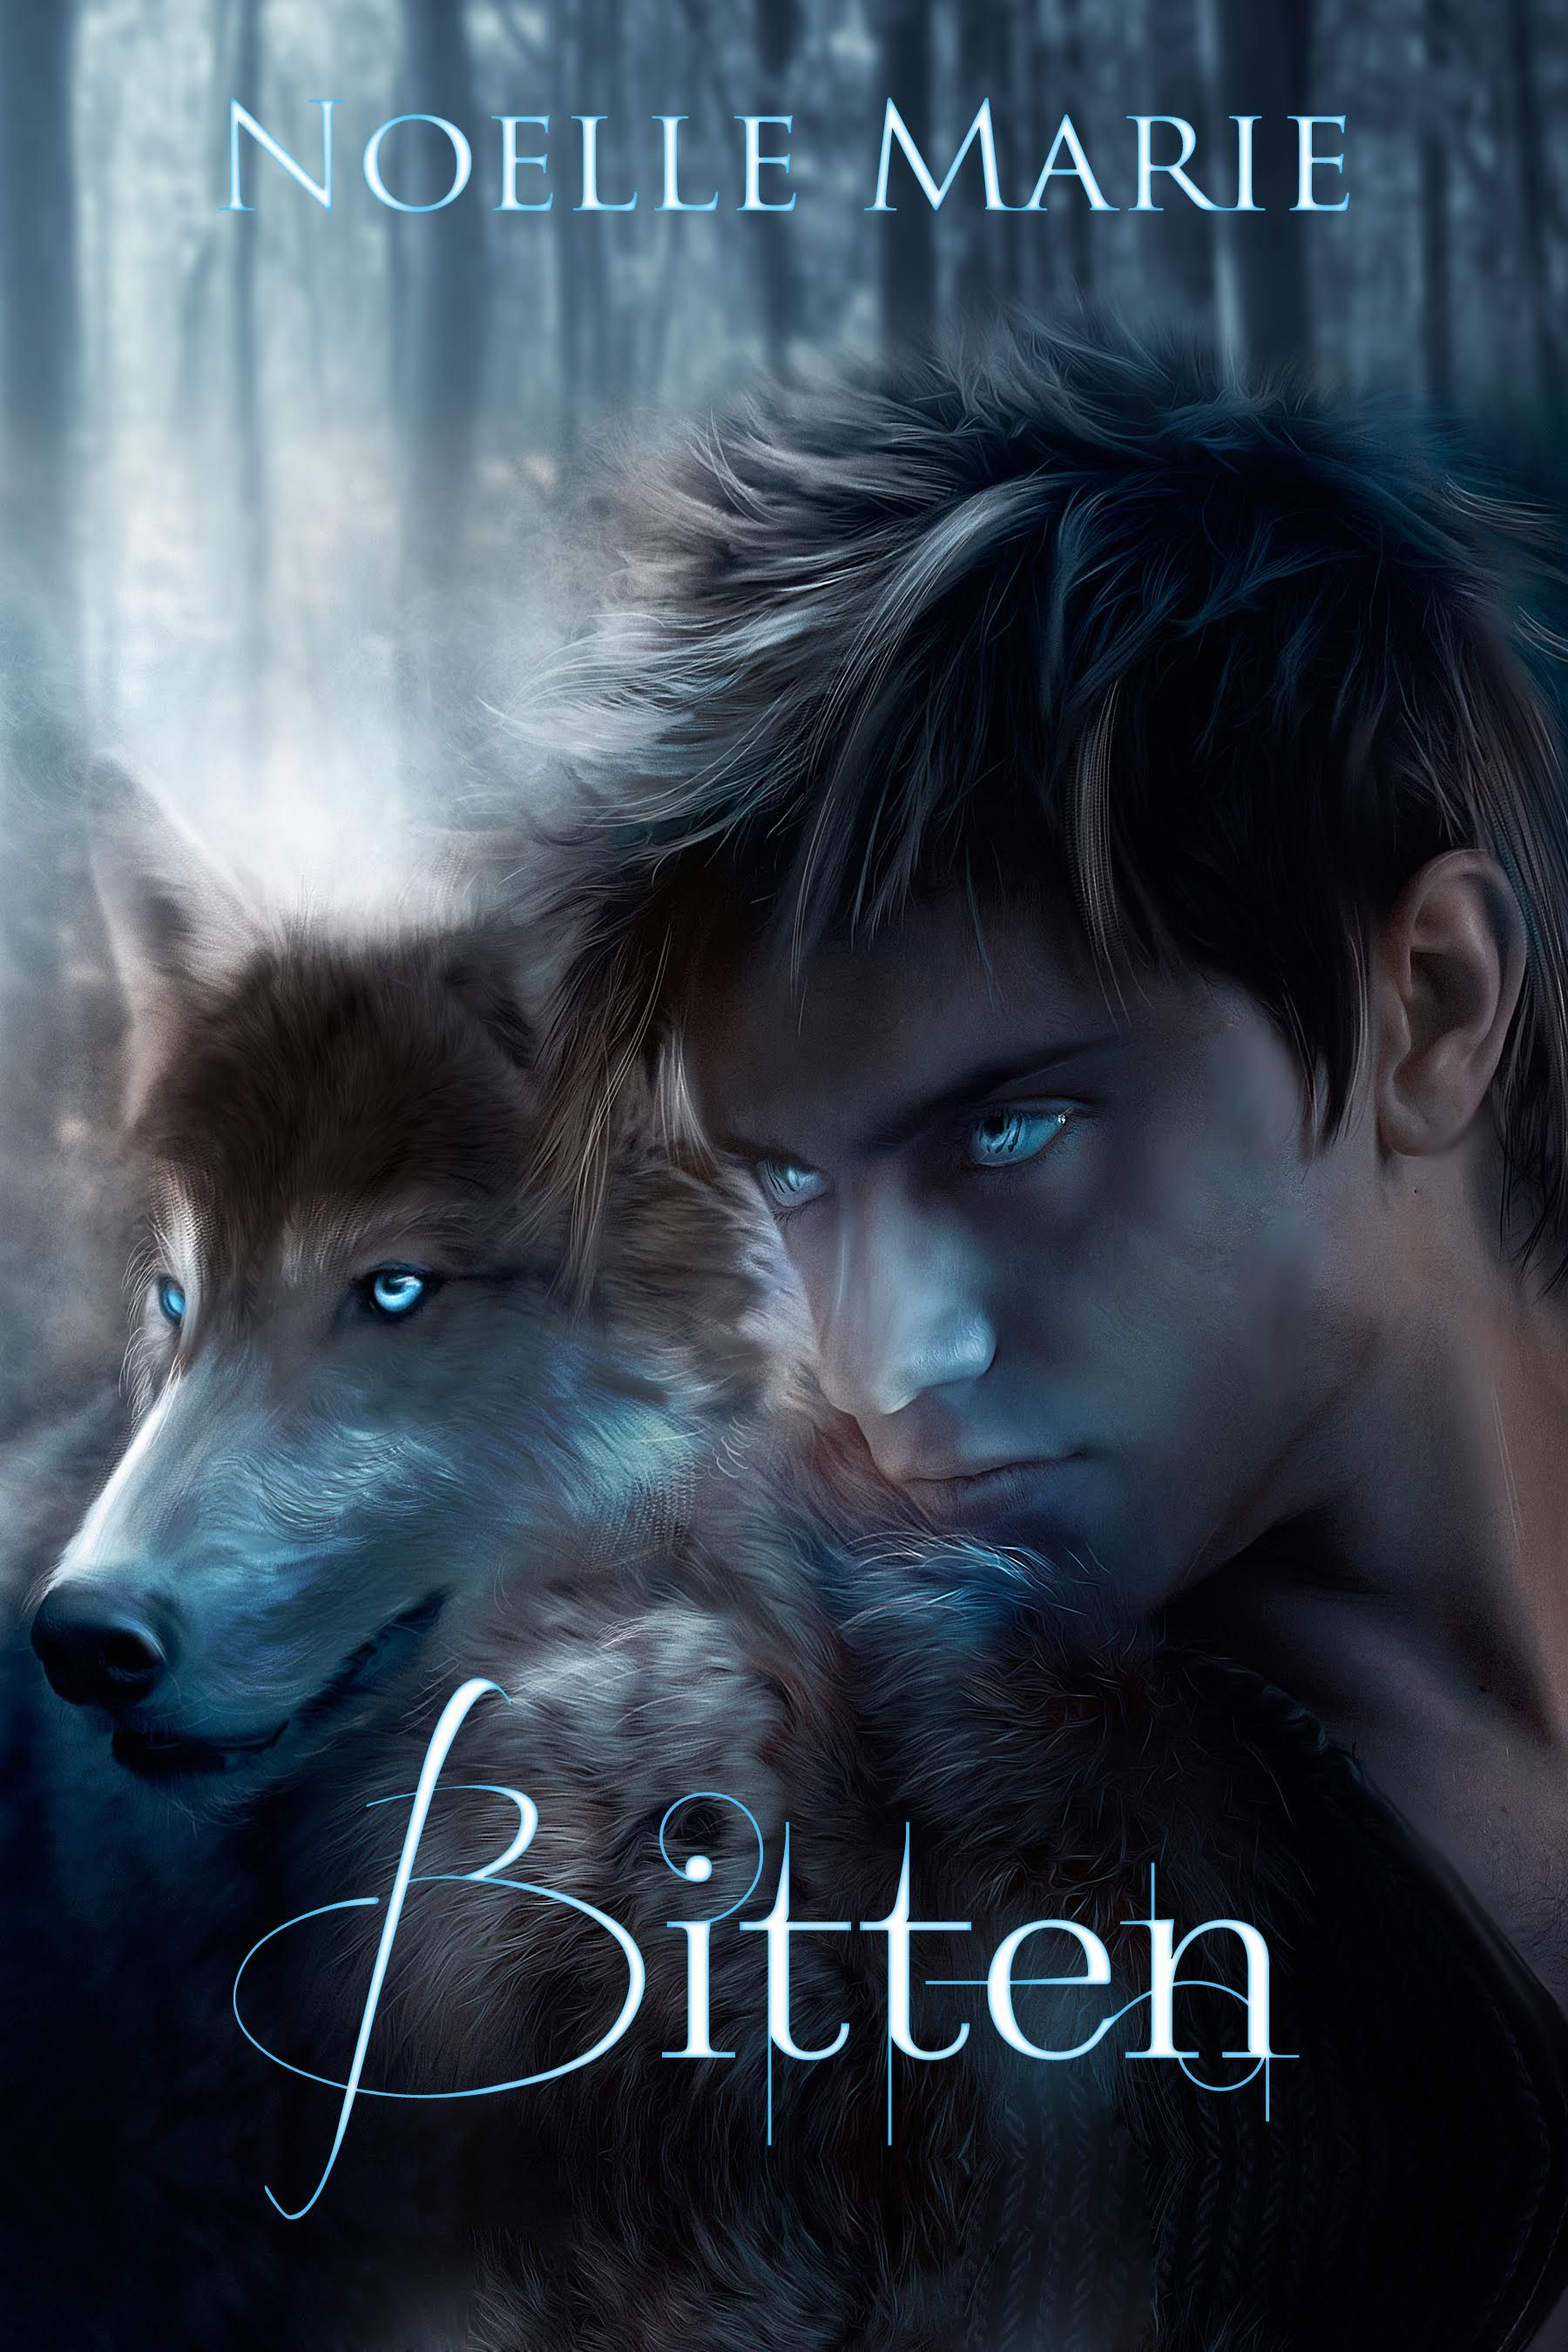 Pin by eBookSoda on Paranormal Romance in 2019 | Books, Paranormal